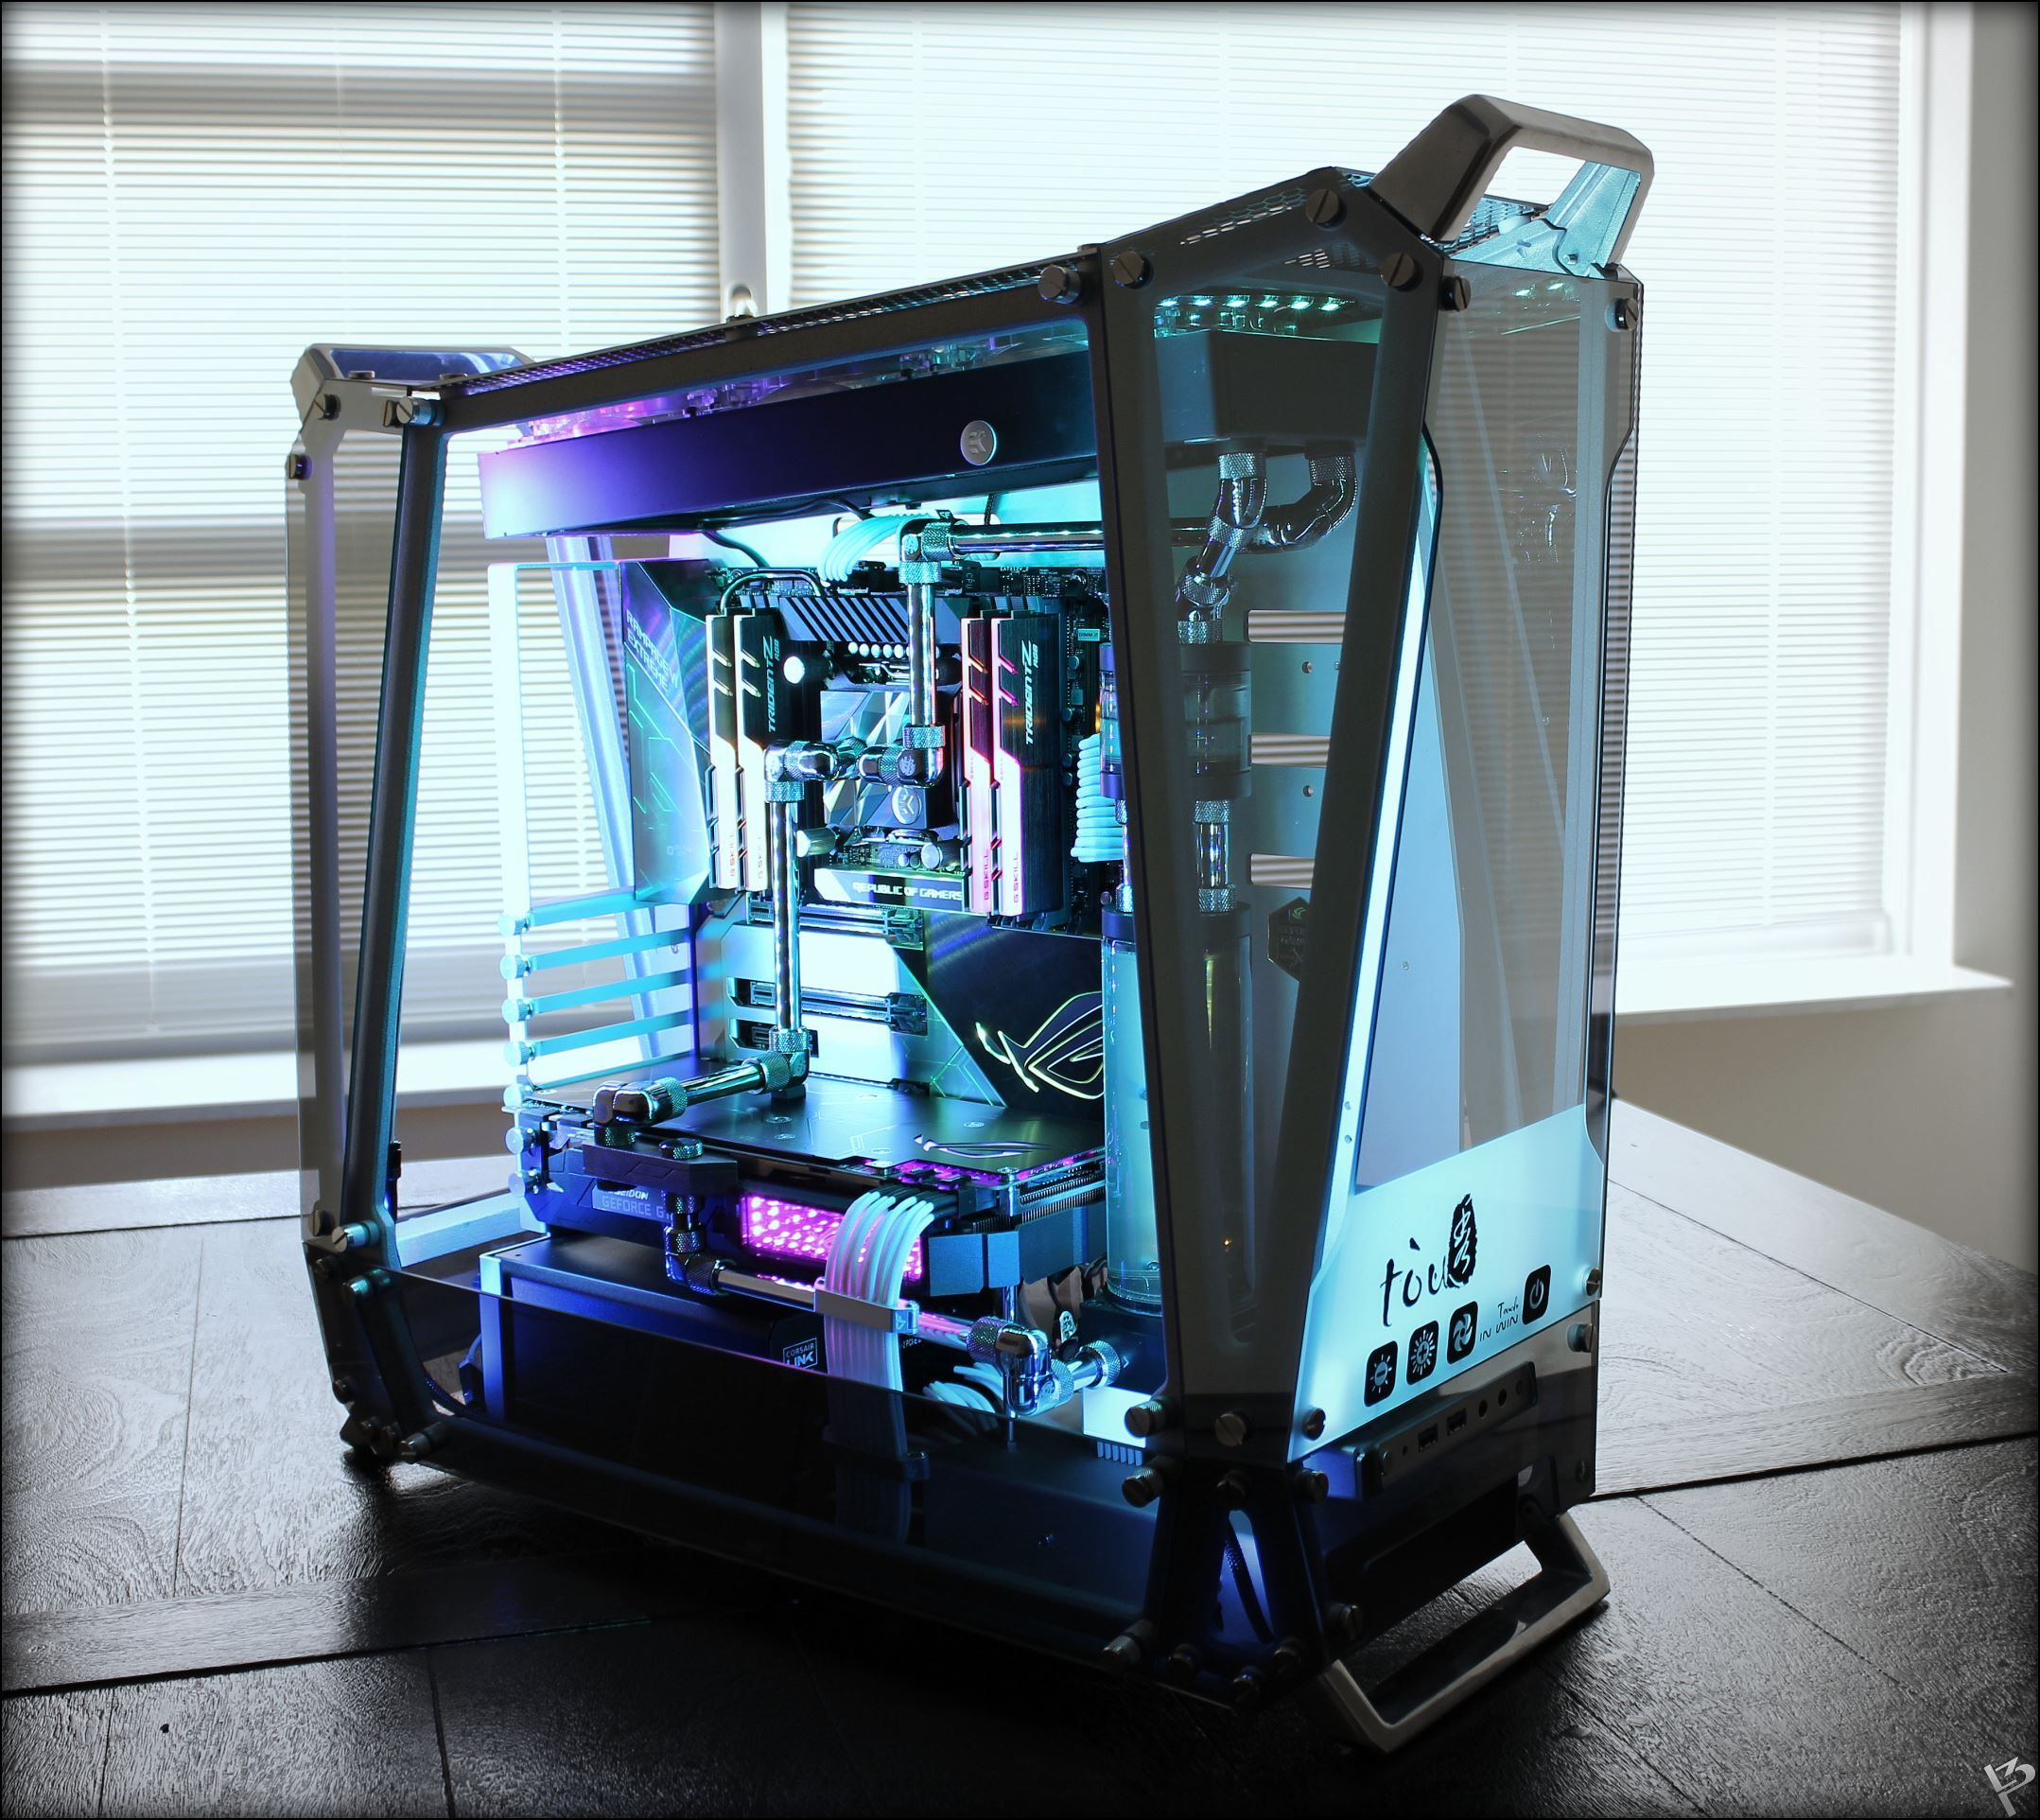 Best Pc Case 2020.Pin By Mykol 212 On Pc In 2019 Gaming Computer Pc Gaming